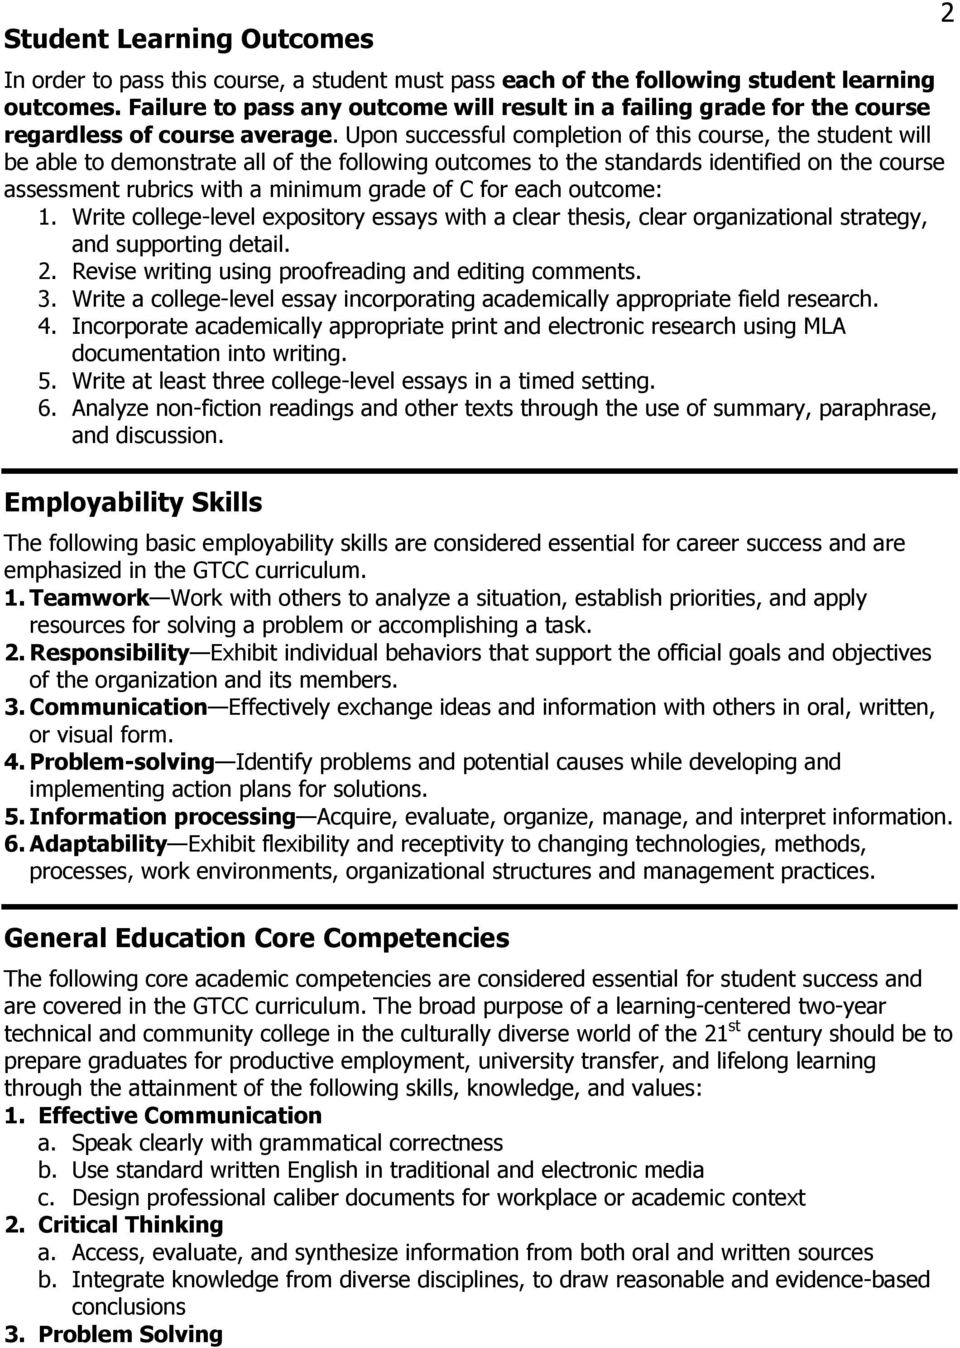 eng 111 expository writing English 111: writing and inquiry english 111 will incorporate some or all of the following designed to develop the ability to produce clear expository prose.